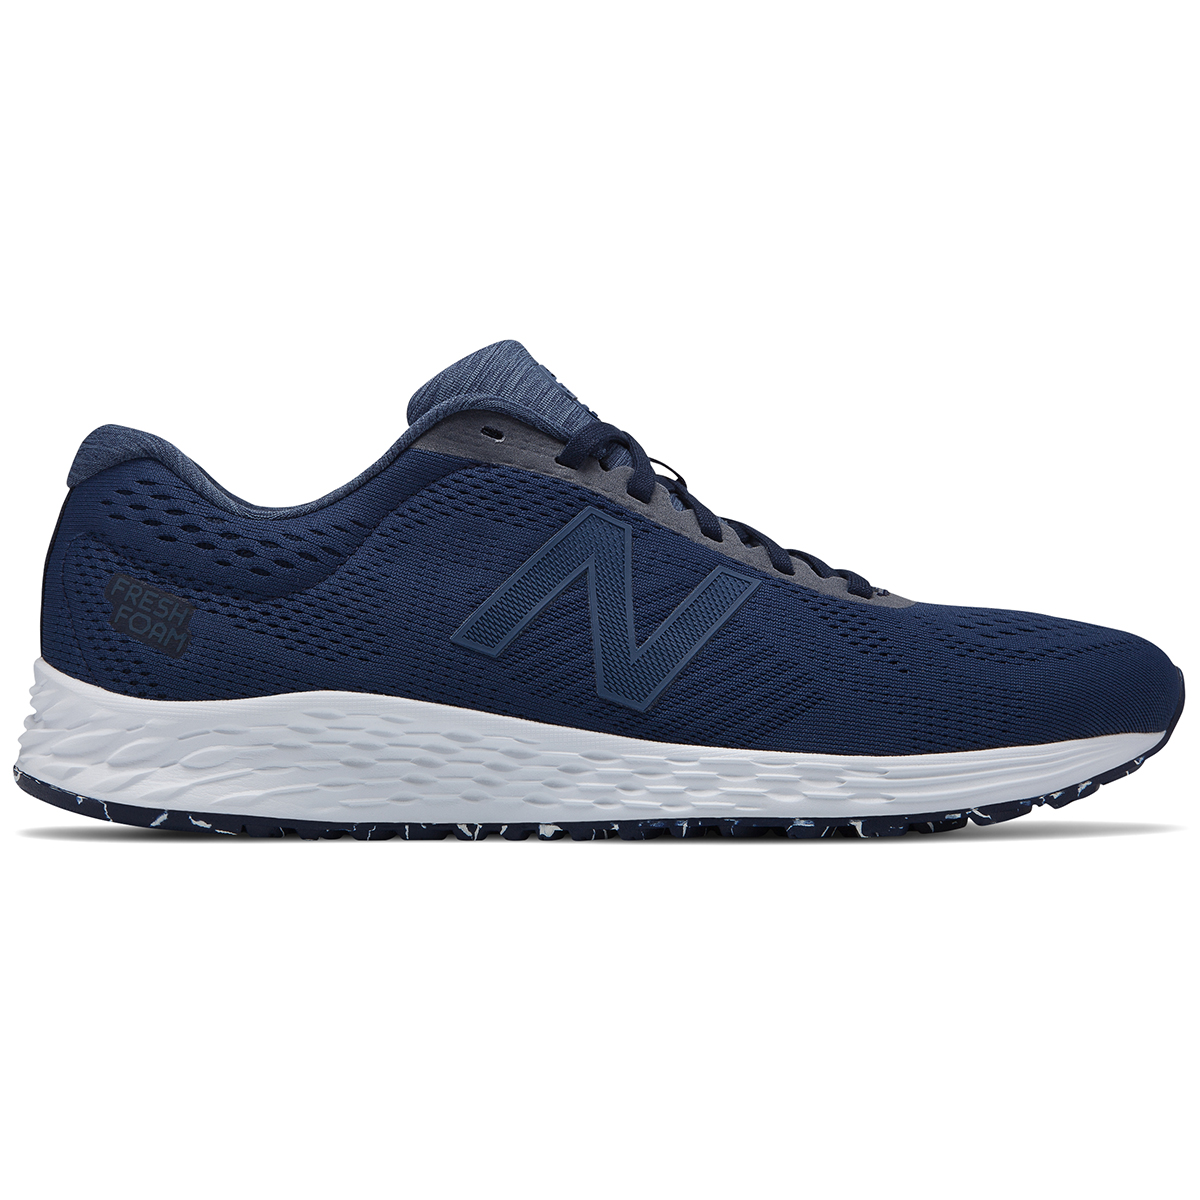 New Balance Men's Fresh Foam Arishi Sport Running Shoes - Blue, 11